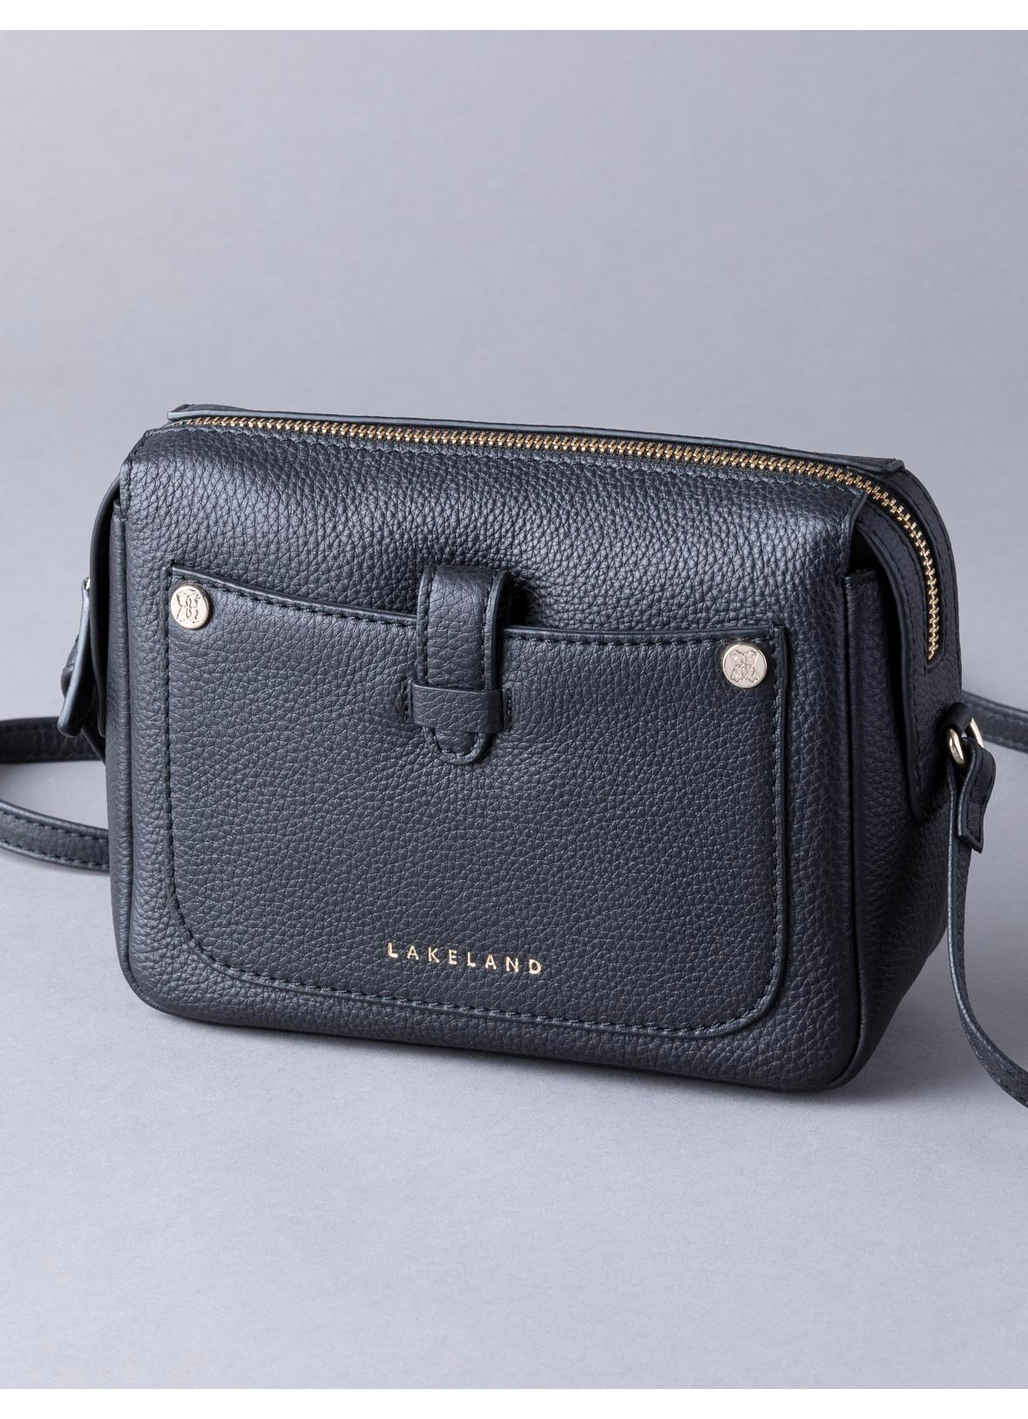 Fairfield Leather Cross Body Bag in Black